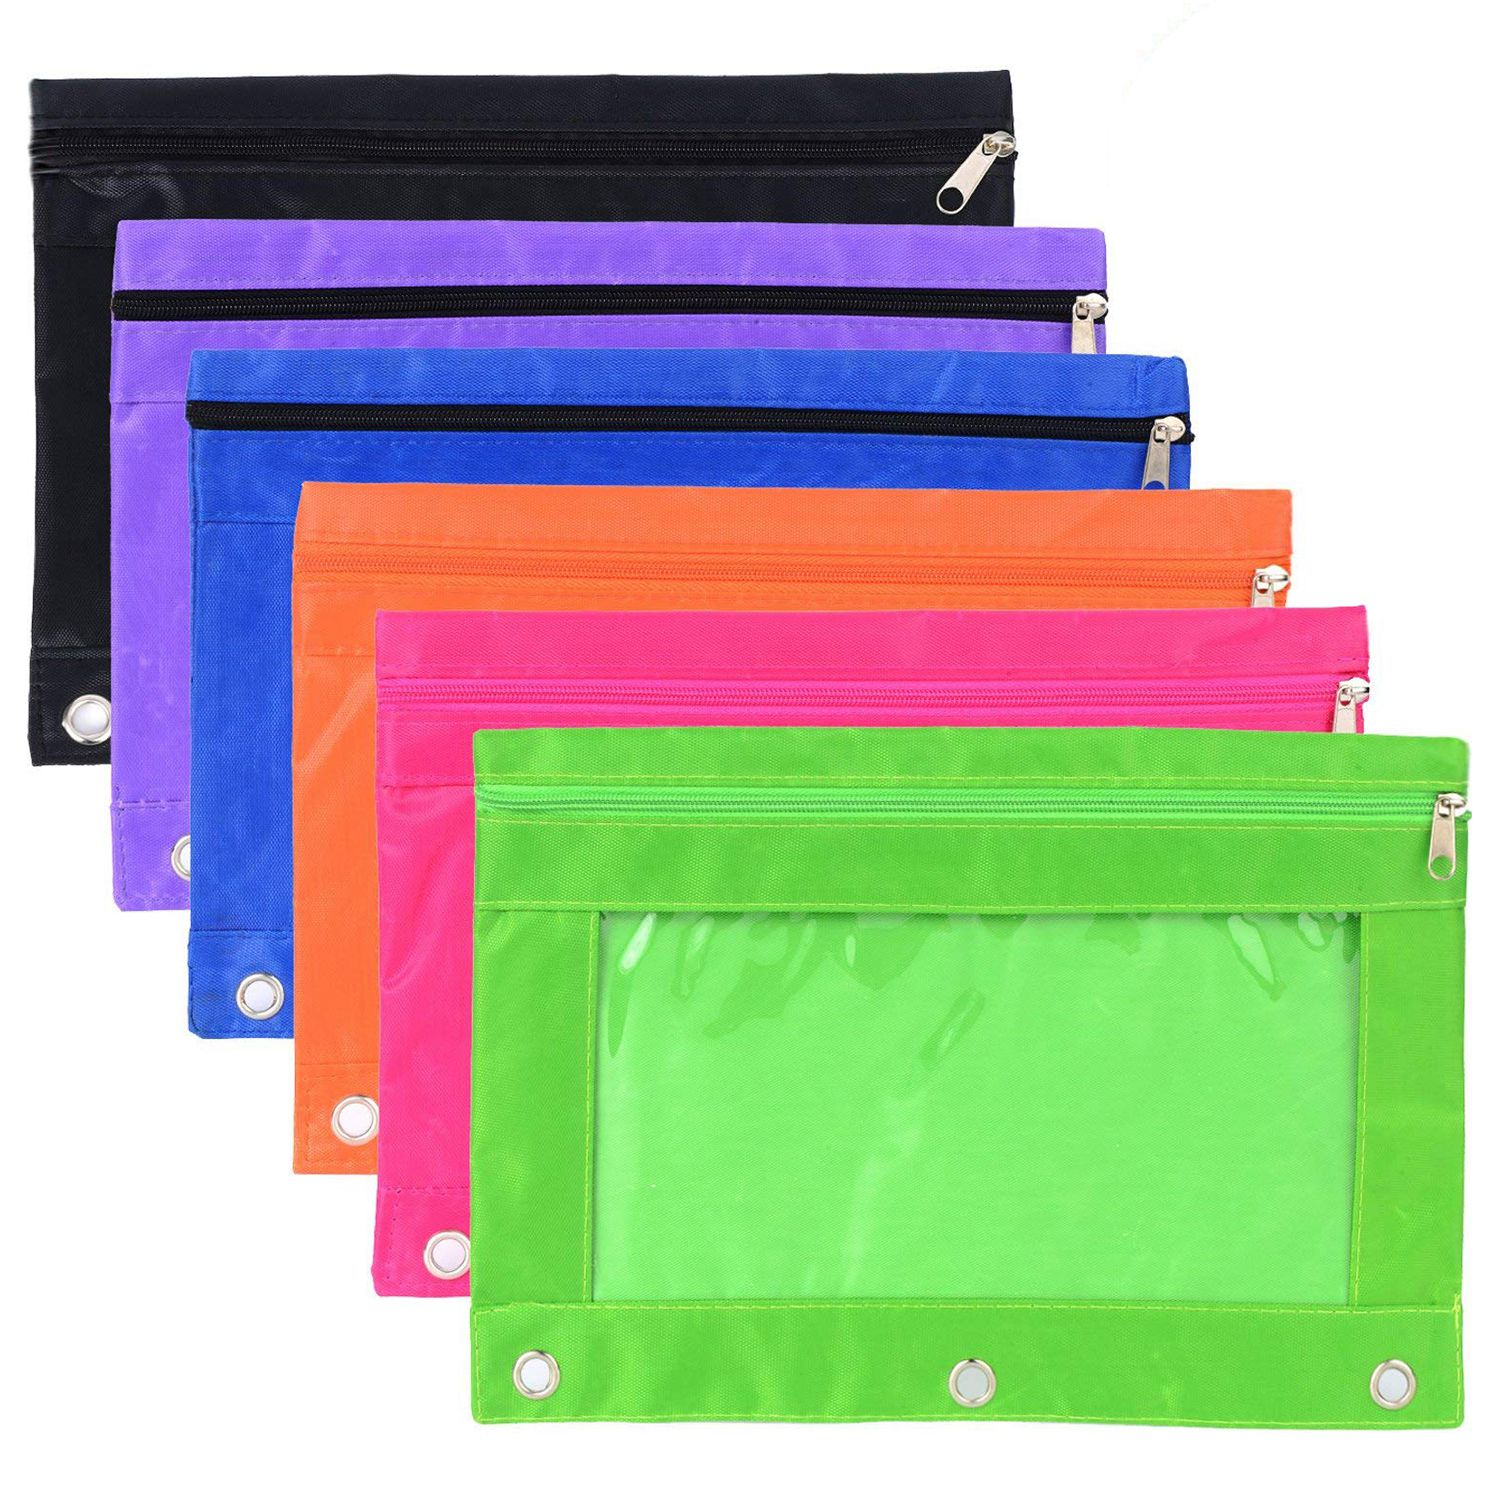 Hot sale 6 Pieces Ring Binder Pouch Pencil Bag with Holes 3-Ring Zipper Pouches with Clear Window (6 Colors) clear wood handle bag with sequin pouch